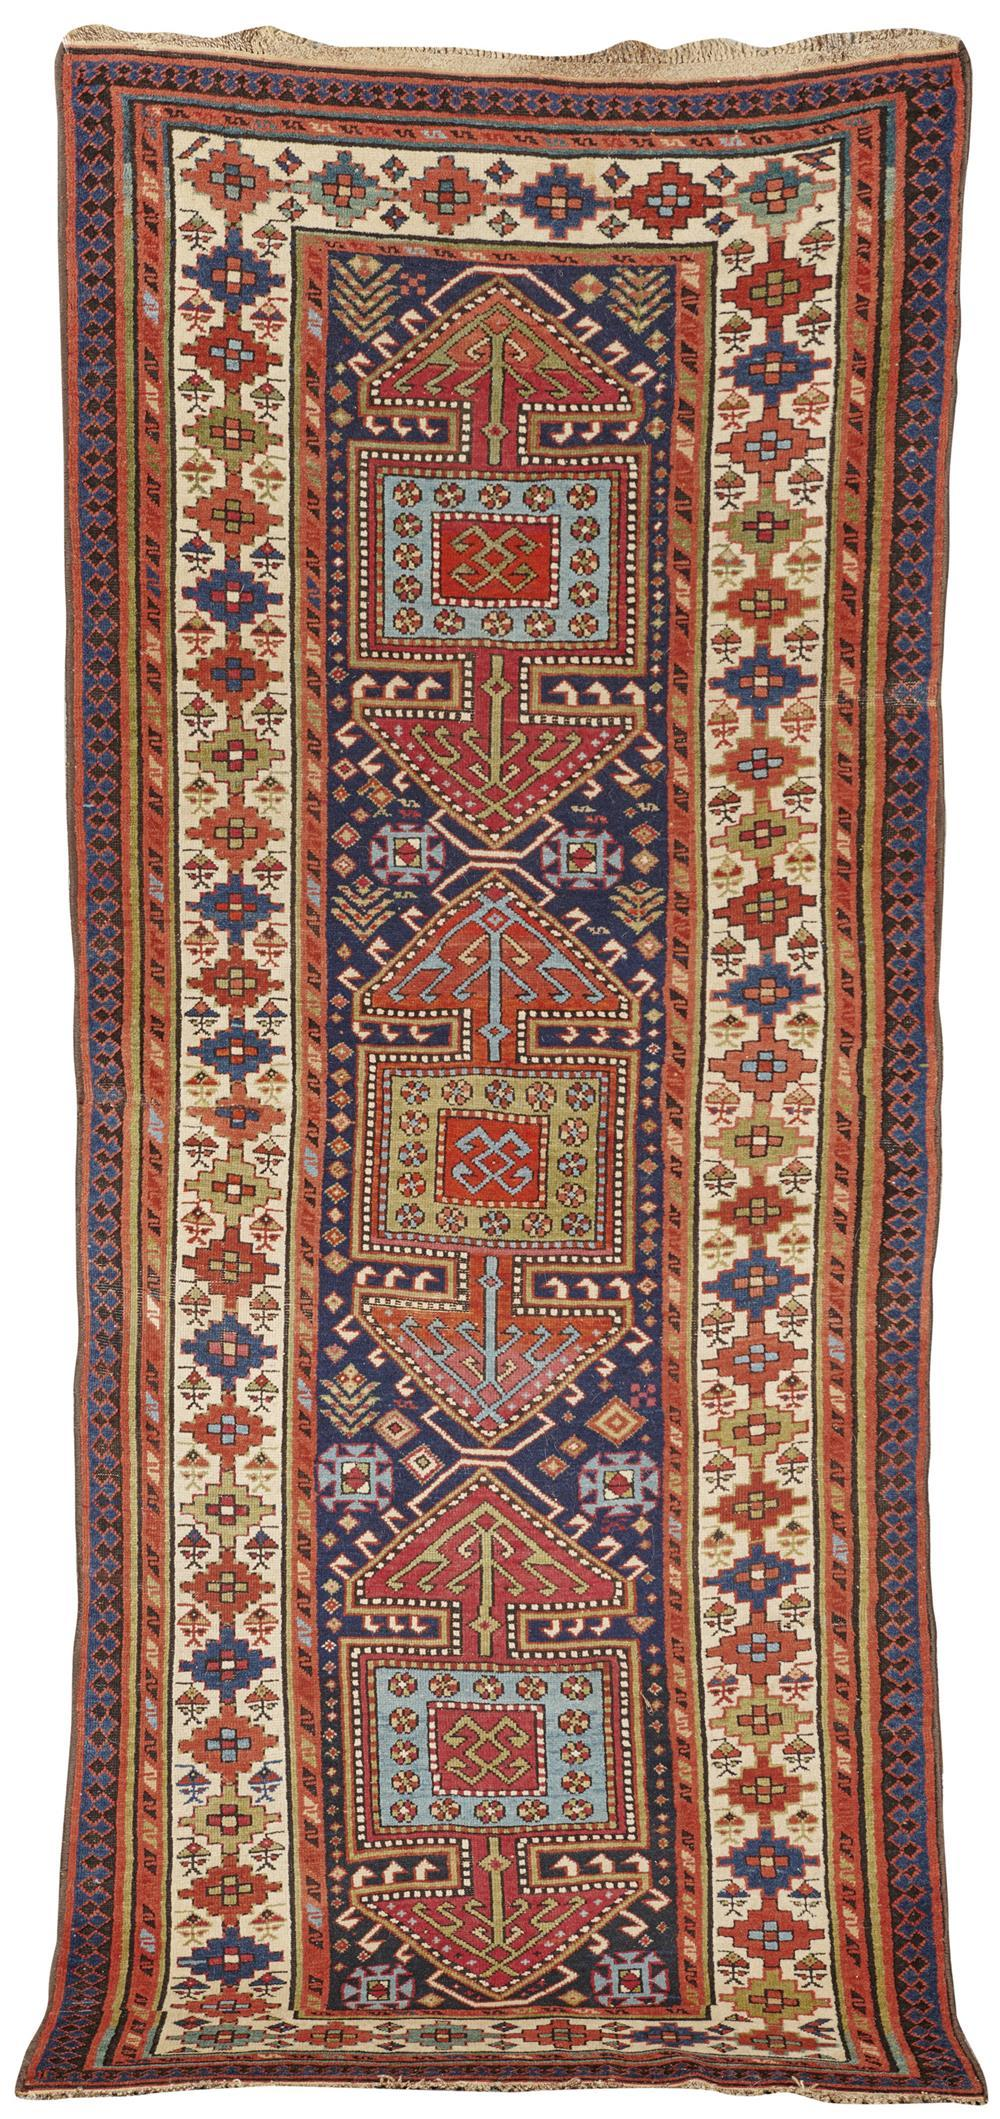 North West Persian/South Caucasian Rug, ca. 1900; 8 ft. 6 in. x 3 ft. 7 in.